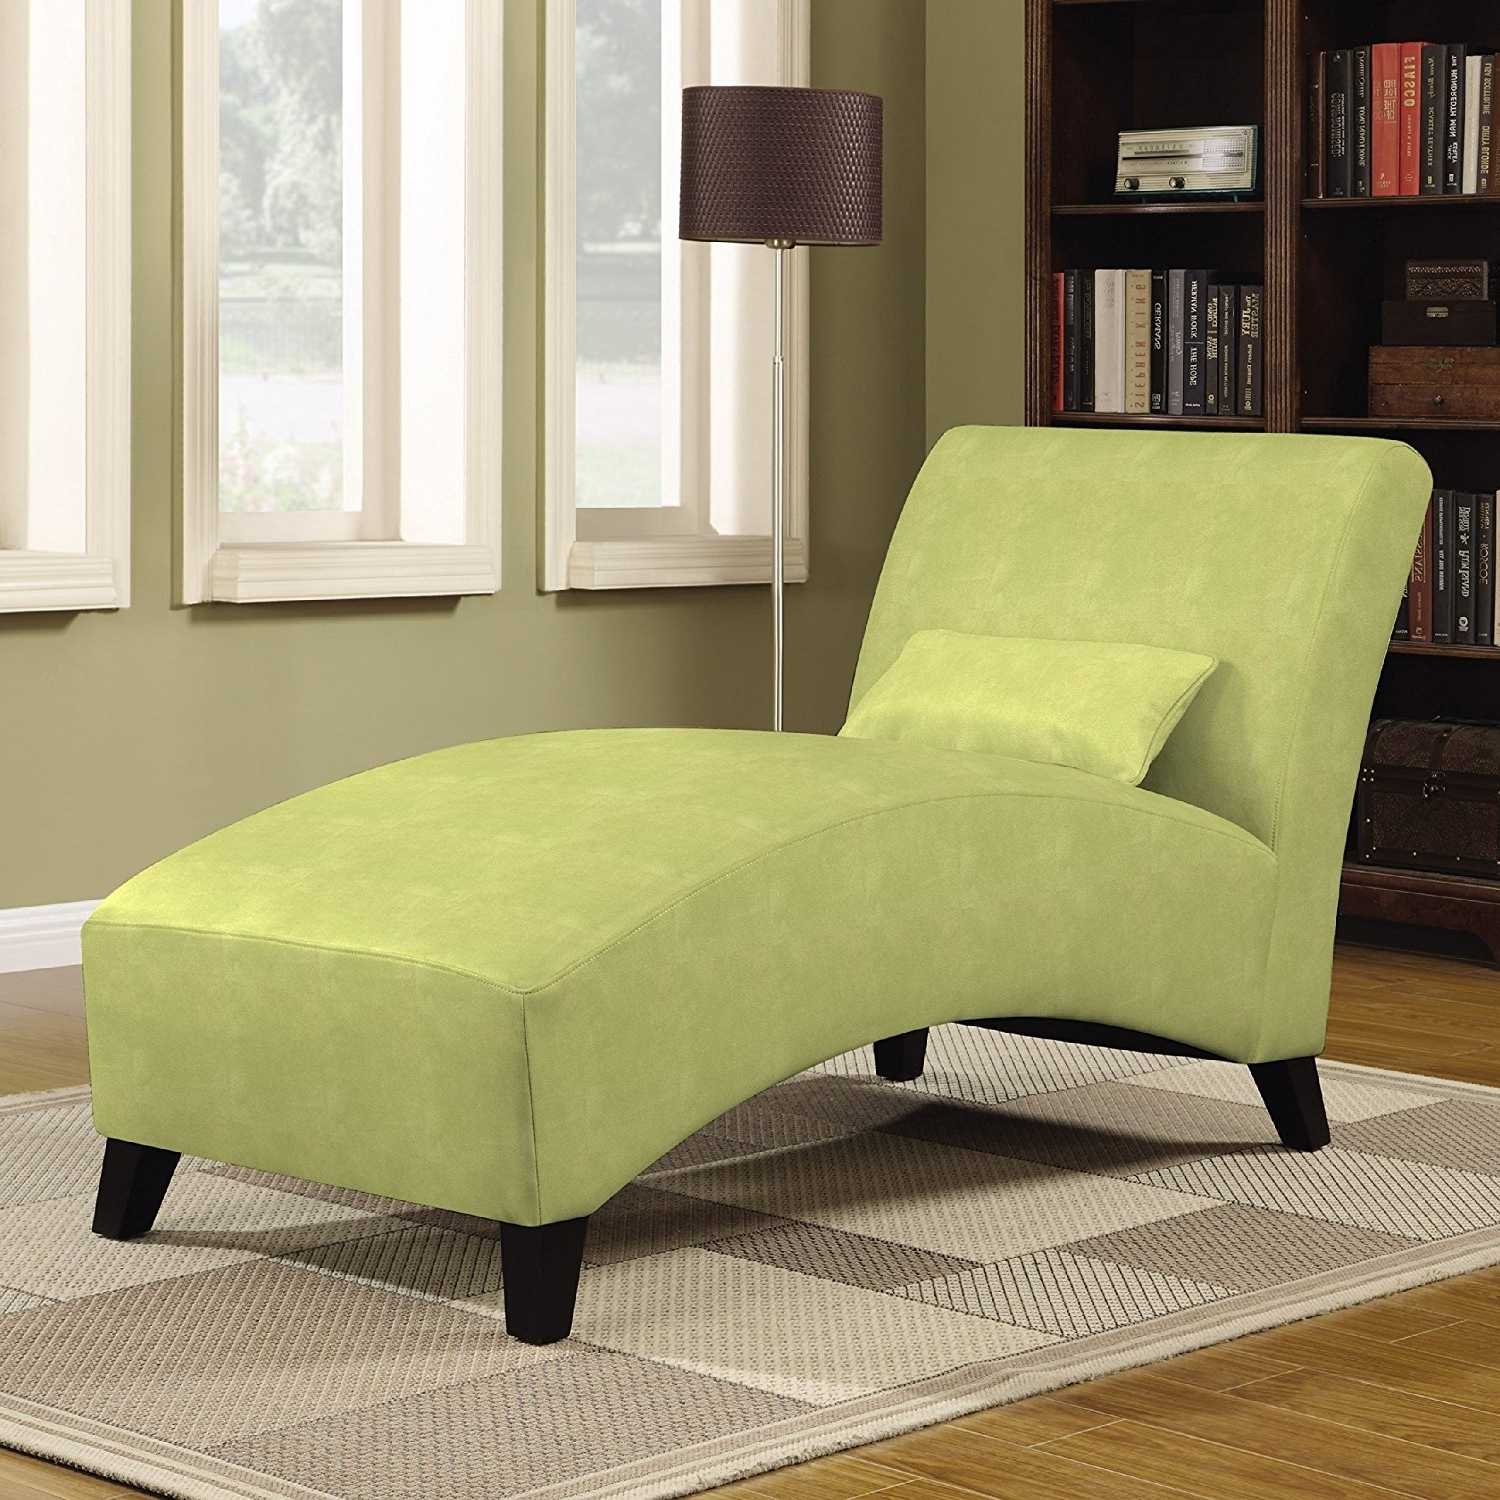 Amazon: Handy Living Chaise Lounge Chair, Gecko Green: Kitchen For Most Popular Curved Chaise Lounges (View 14 of 15)